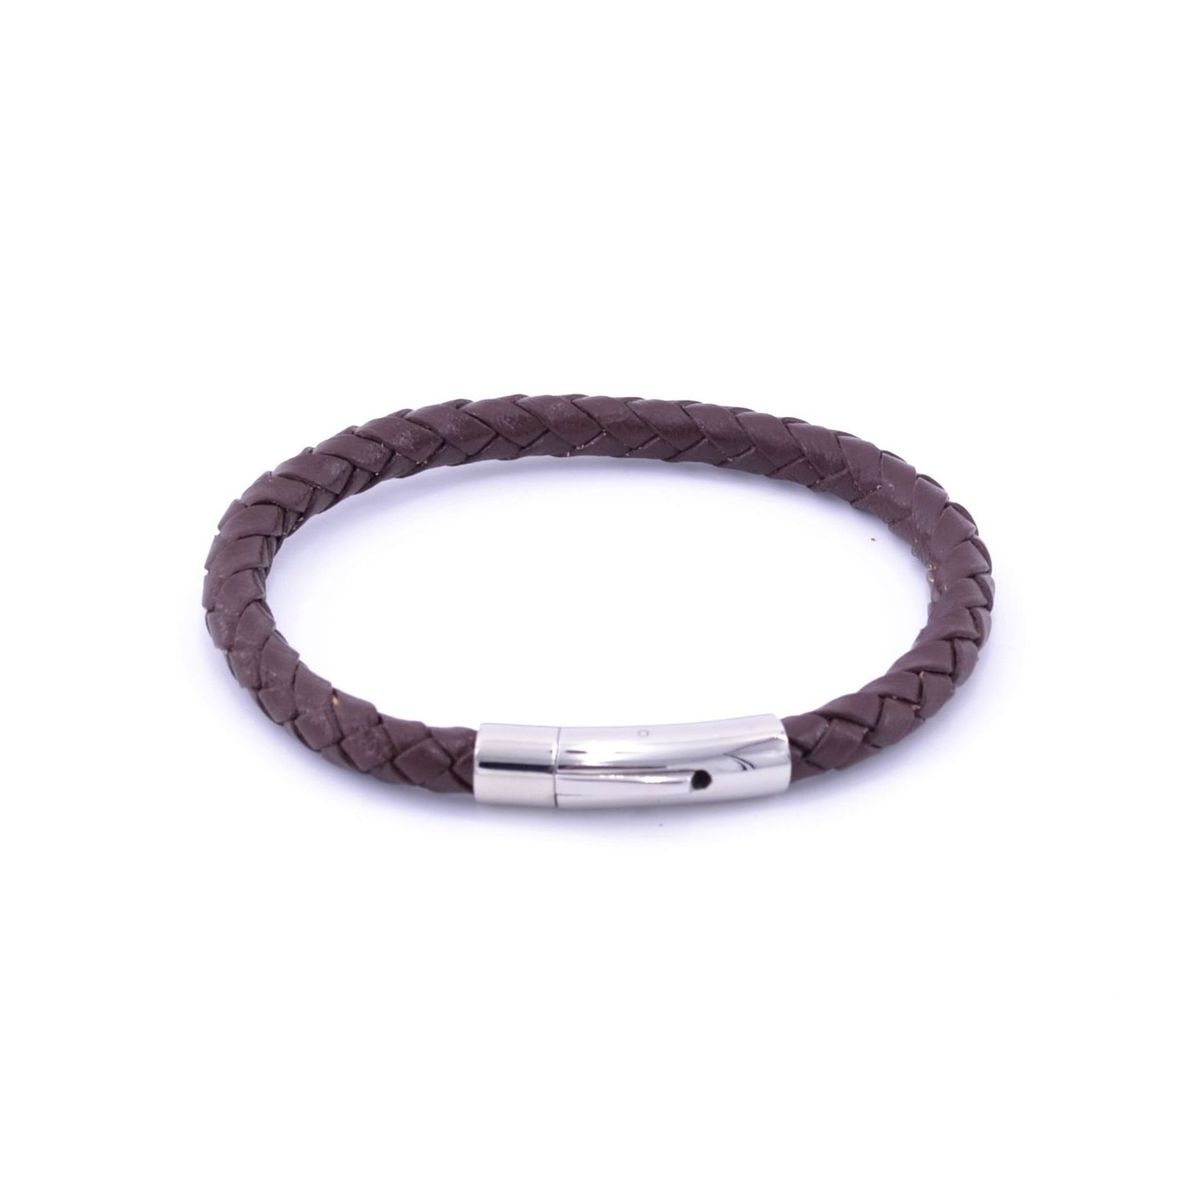 Braided leather bracelet 2 Brown BRASS Workshop